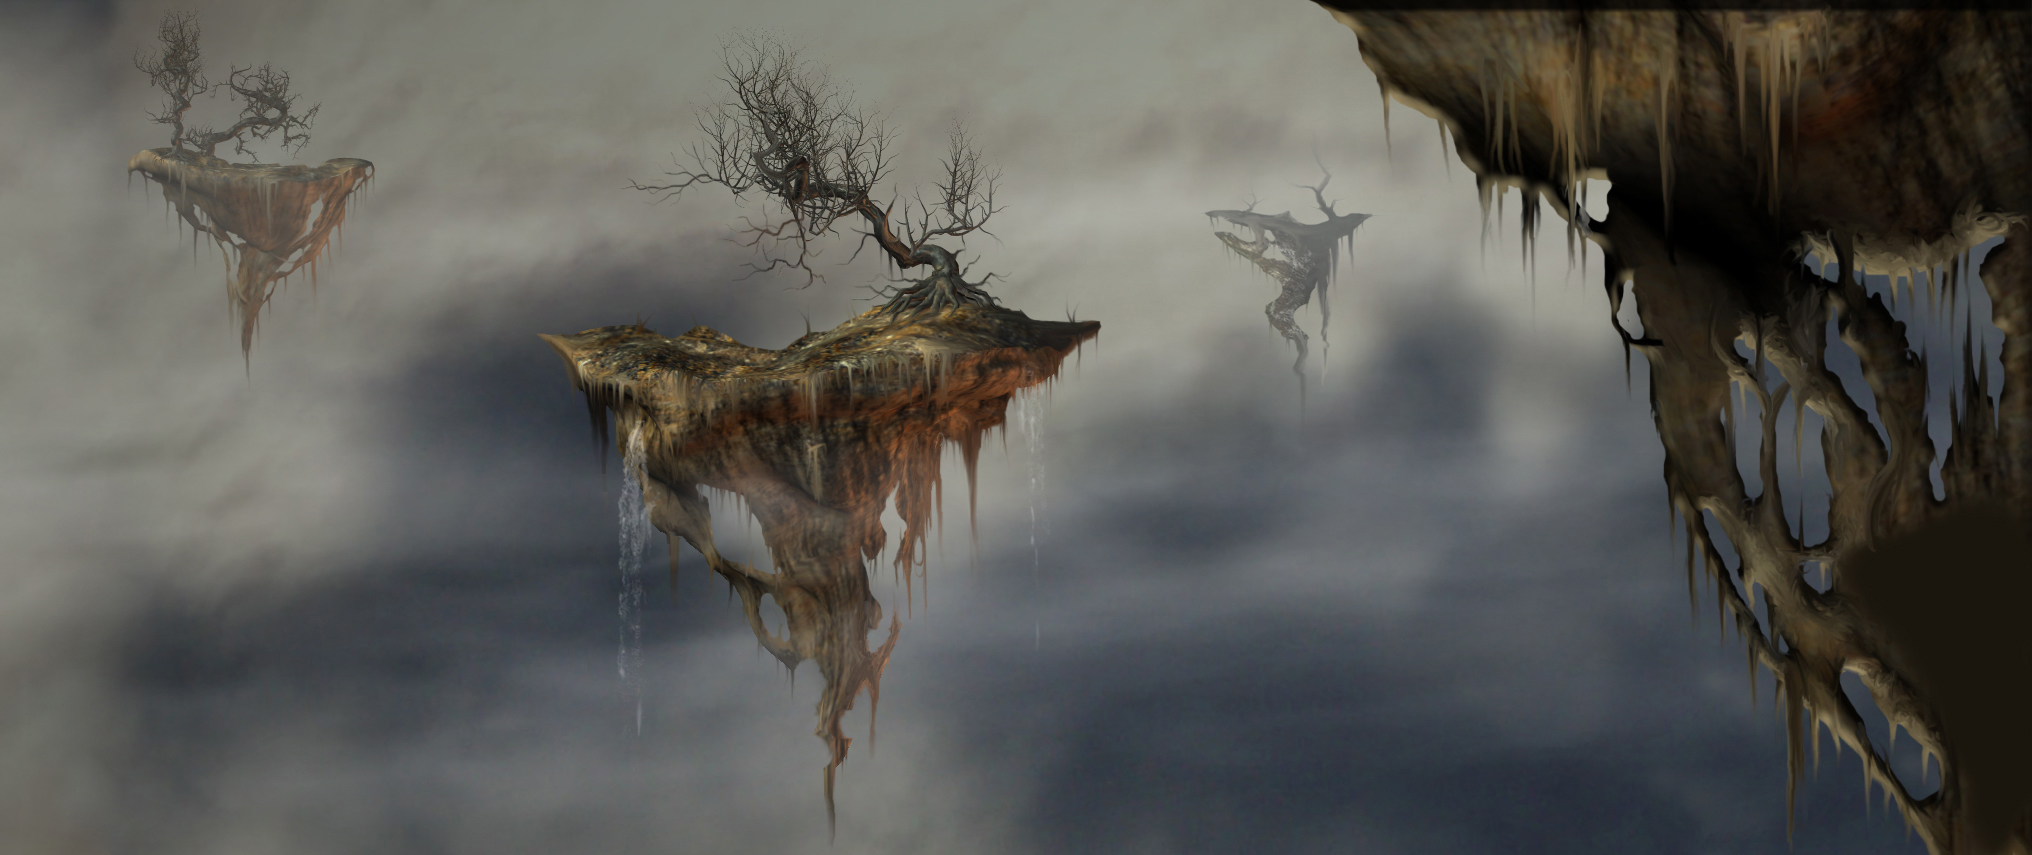 Floating Islands by mac2010